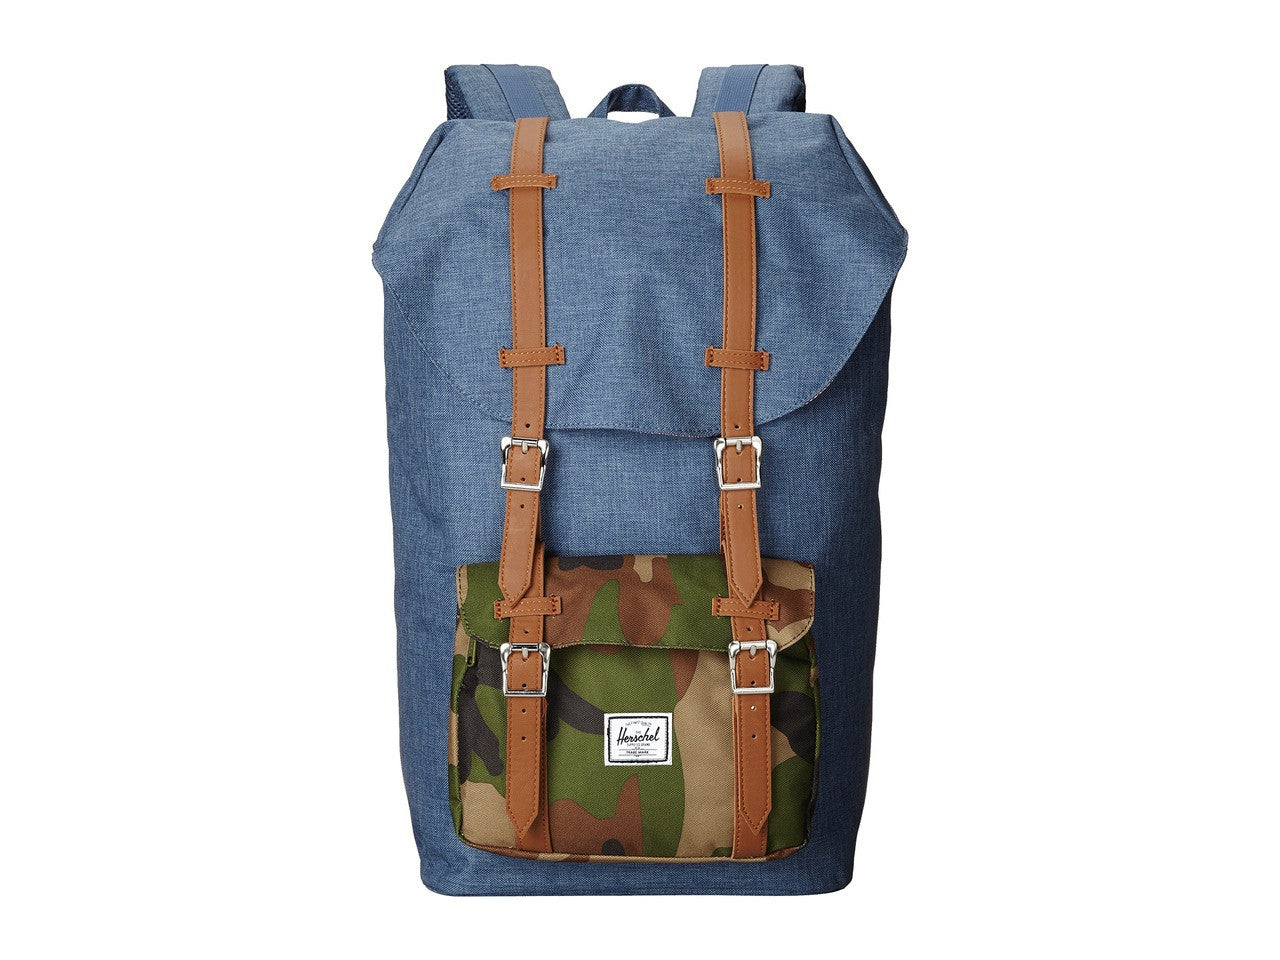 Herschel Supply Co. - Little America Backpack, Crosshatch Navy Camo - The Giant Peach